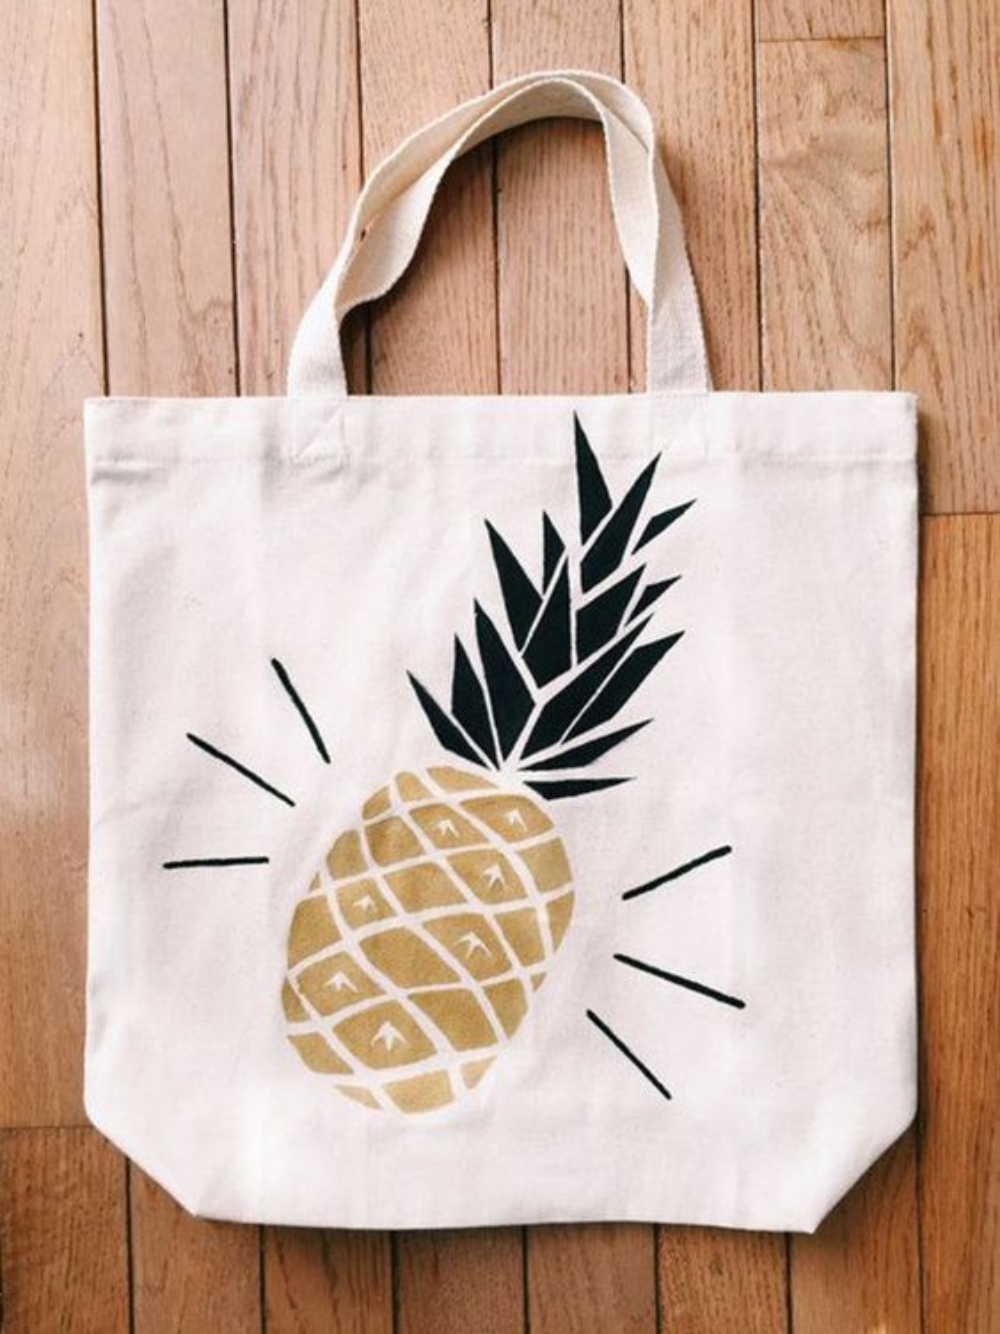 Design Your Own Tote Bags with Stencils!